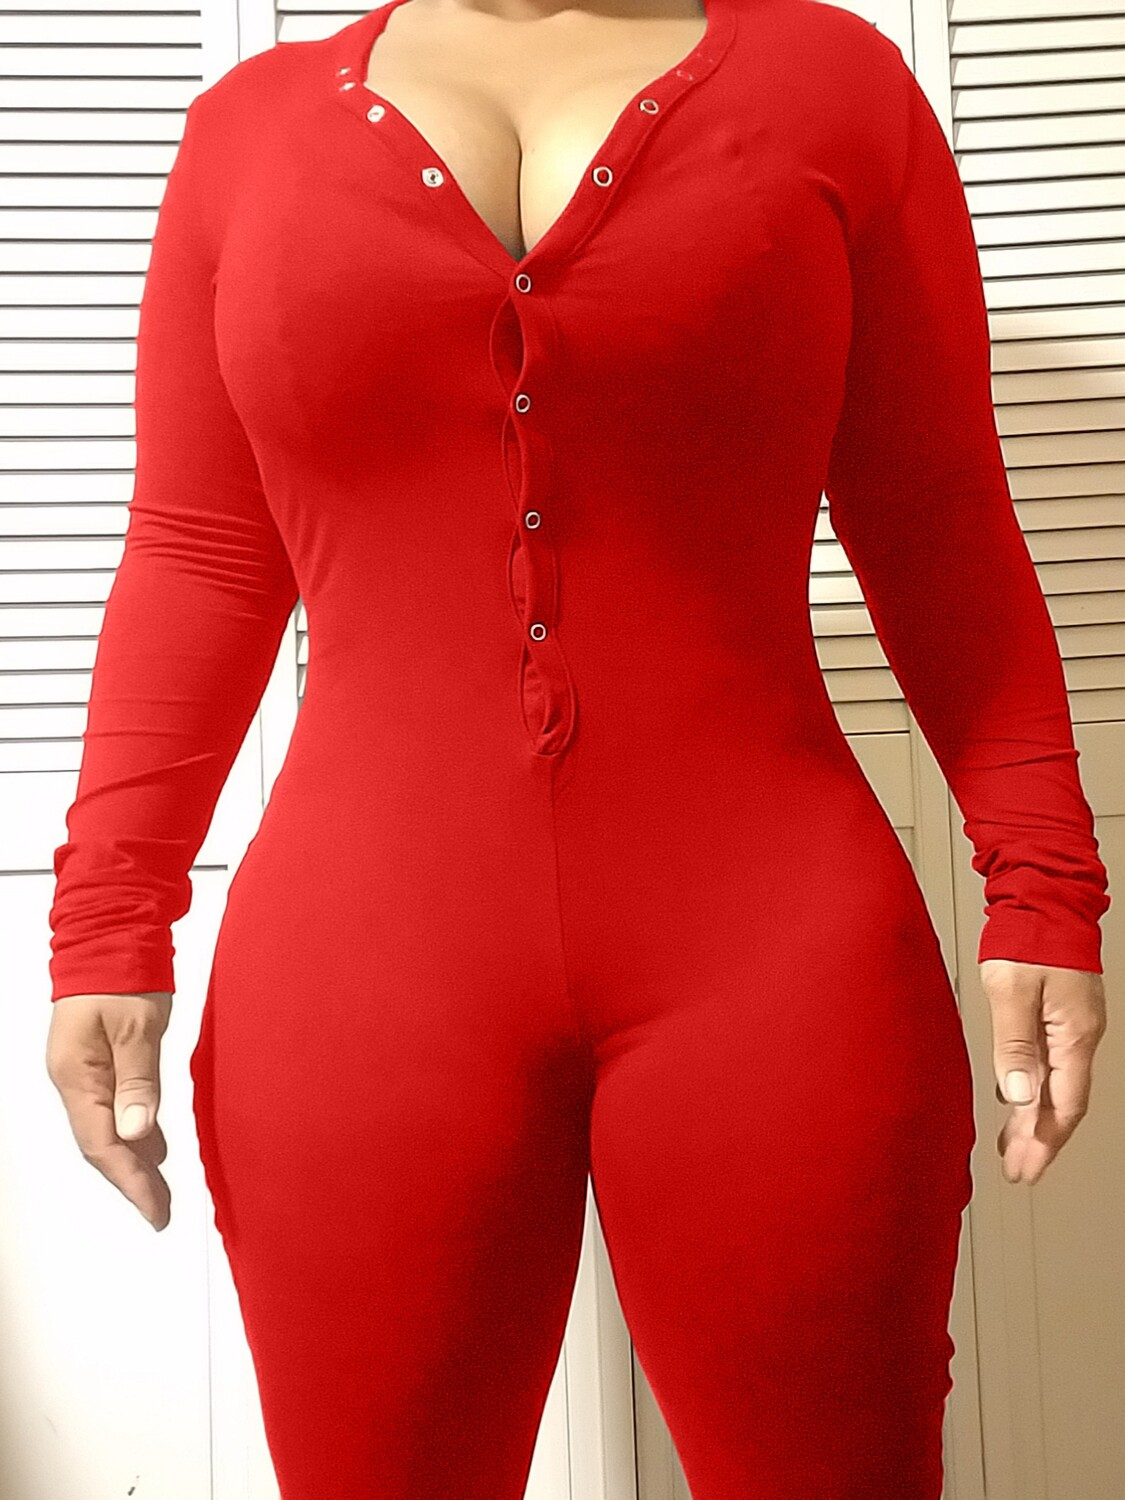 Women's Long Sleeve Shorts Playsuit, Casual, Party, Onesie Pajama Wear- PURE COLOR RED